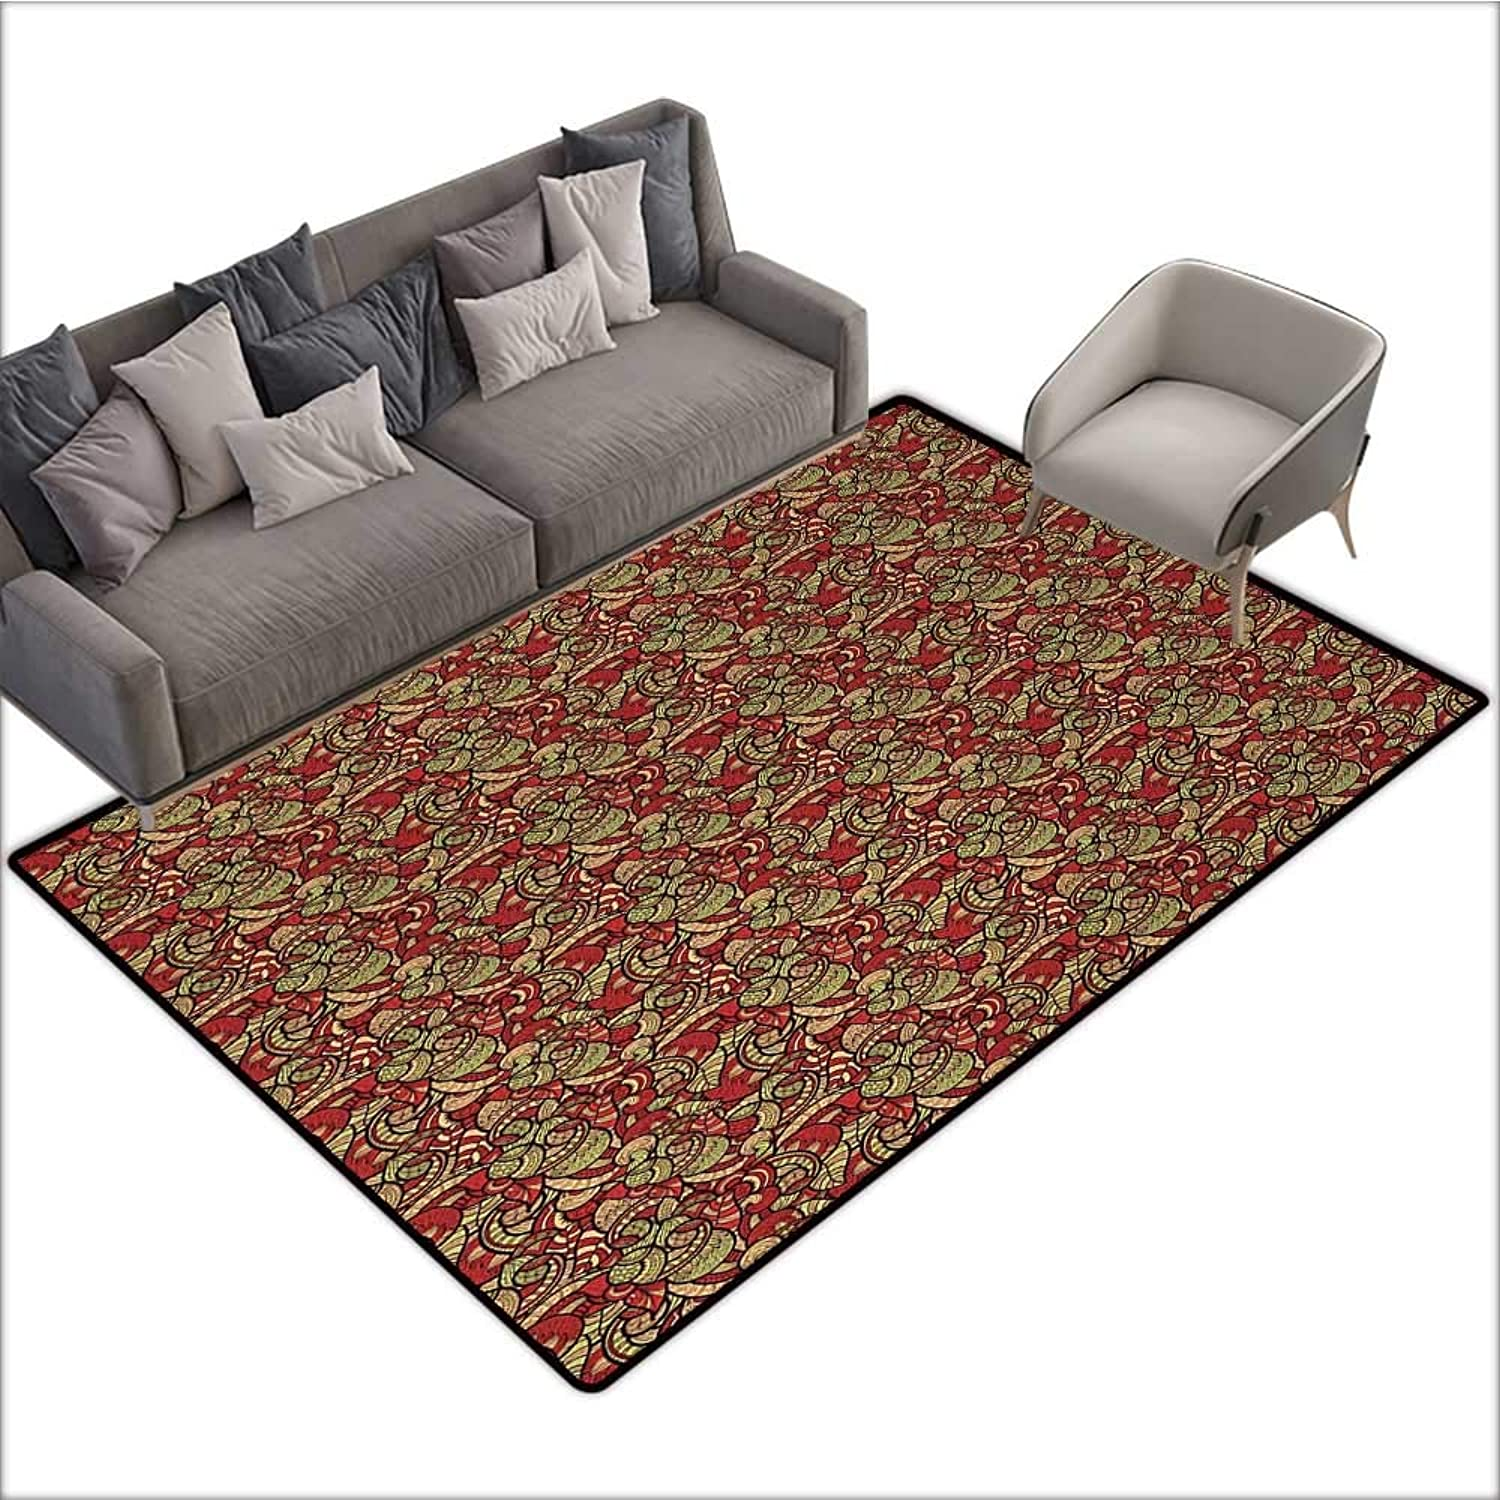 Ethnic Indoor Floor mat Doodle Style Pattern with Swirls Leaves and Petals African Botanical 78 x94 ,Can be Used for Floor Decoration